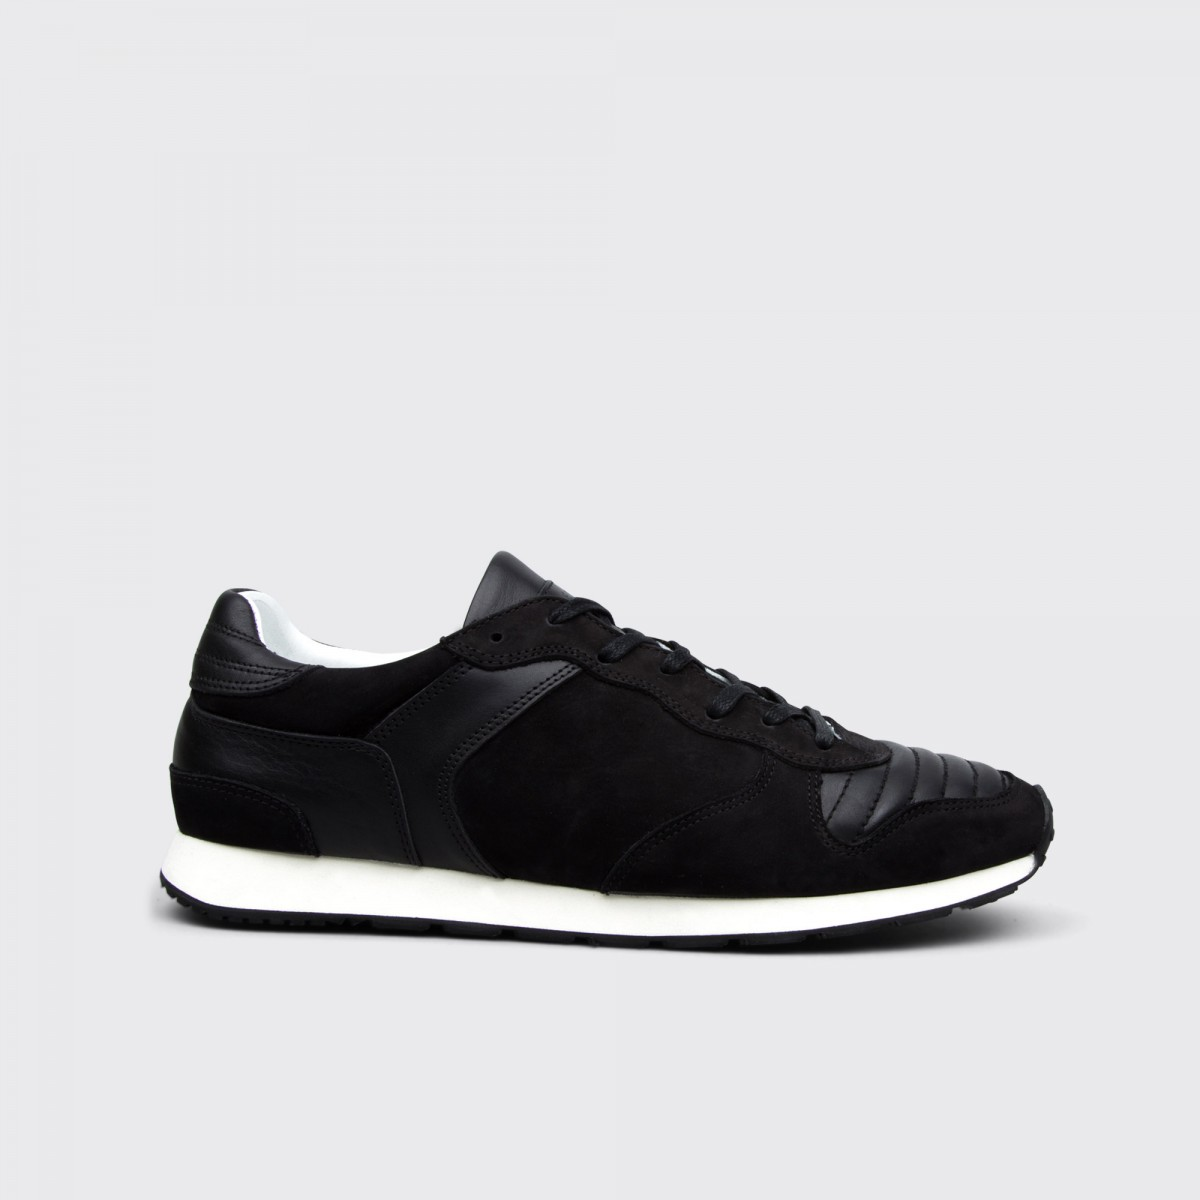 etq-amsterdam-runner-black-ribbed-side